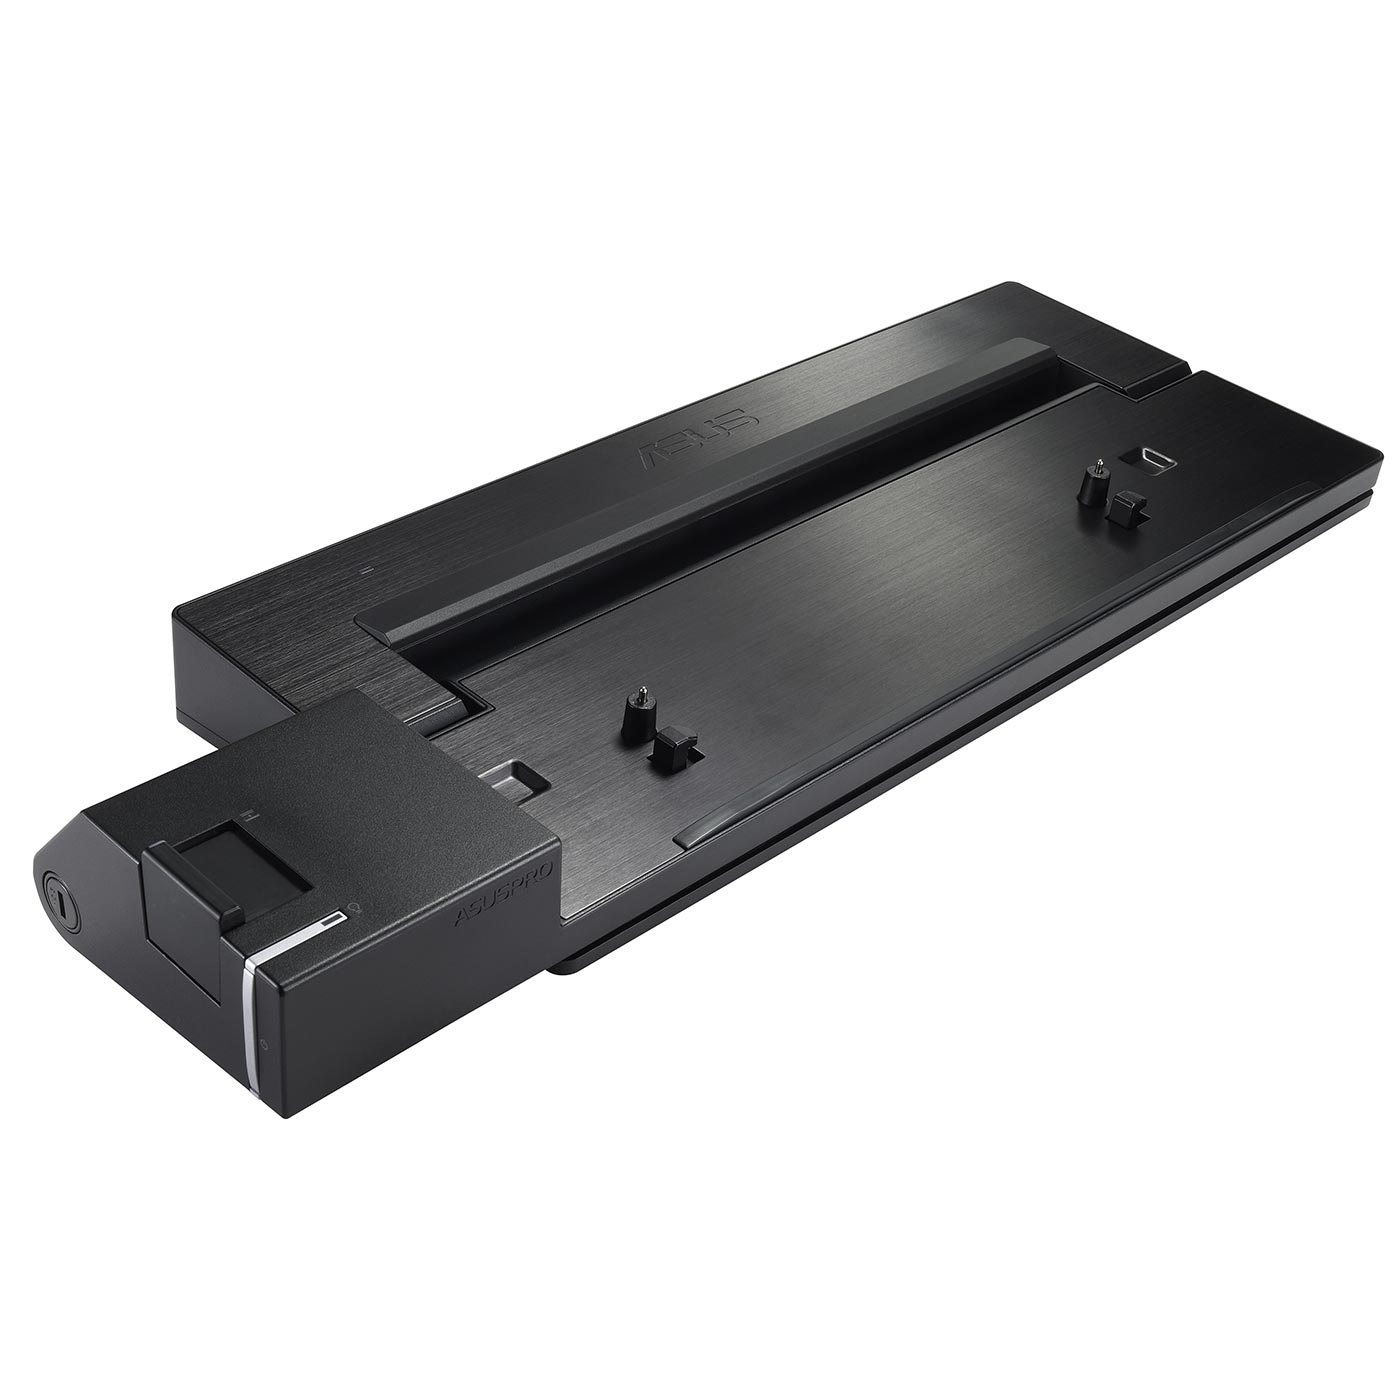 asus ultra docking station 90nb04h0 p00130 achat. Black Bedroom Furniture Sets. Home Design Ideas